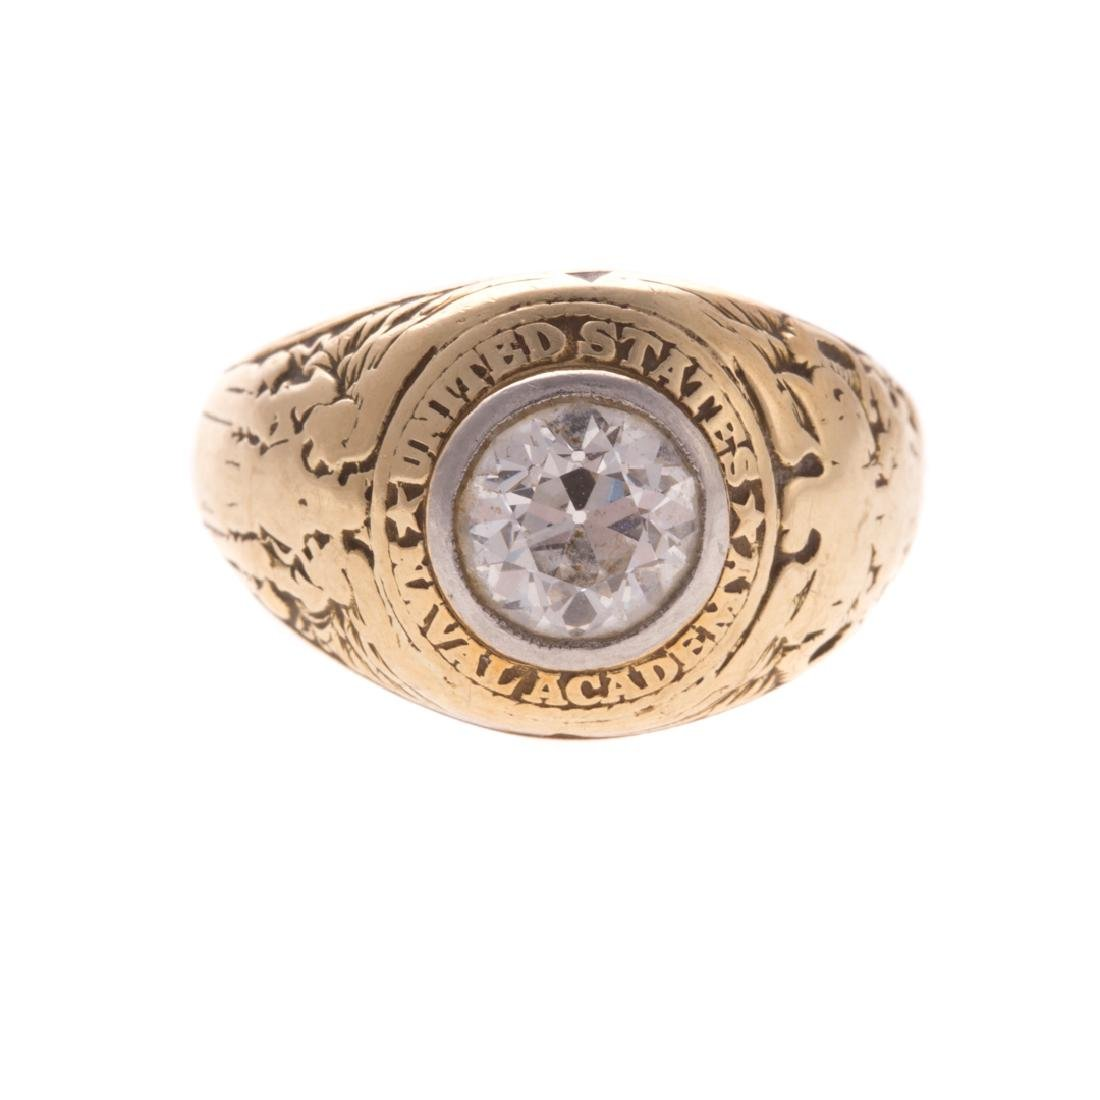 A Lady's Miniature US Naval Academy Ring in 14K